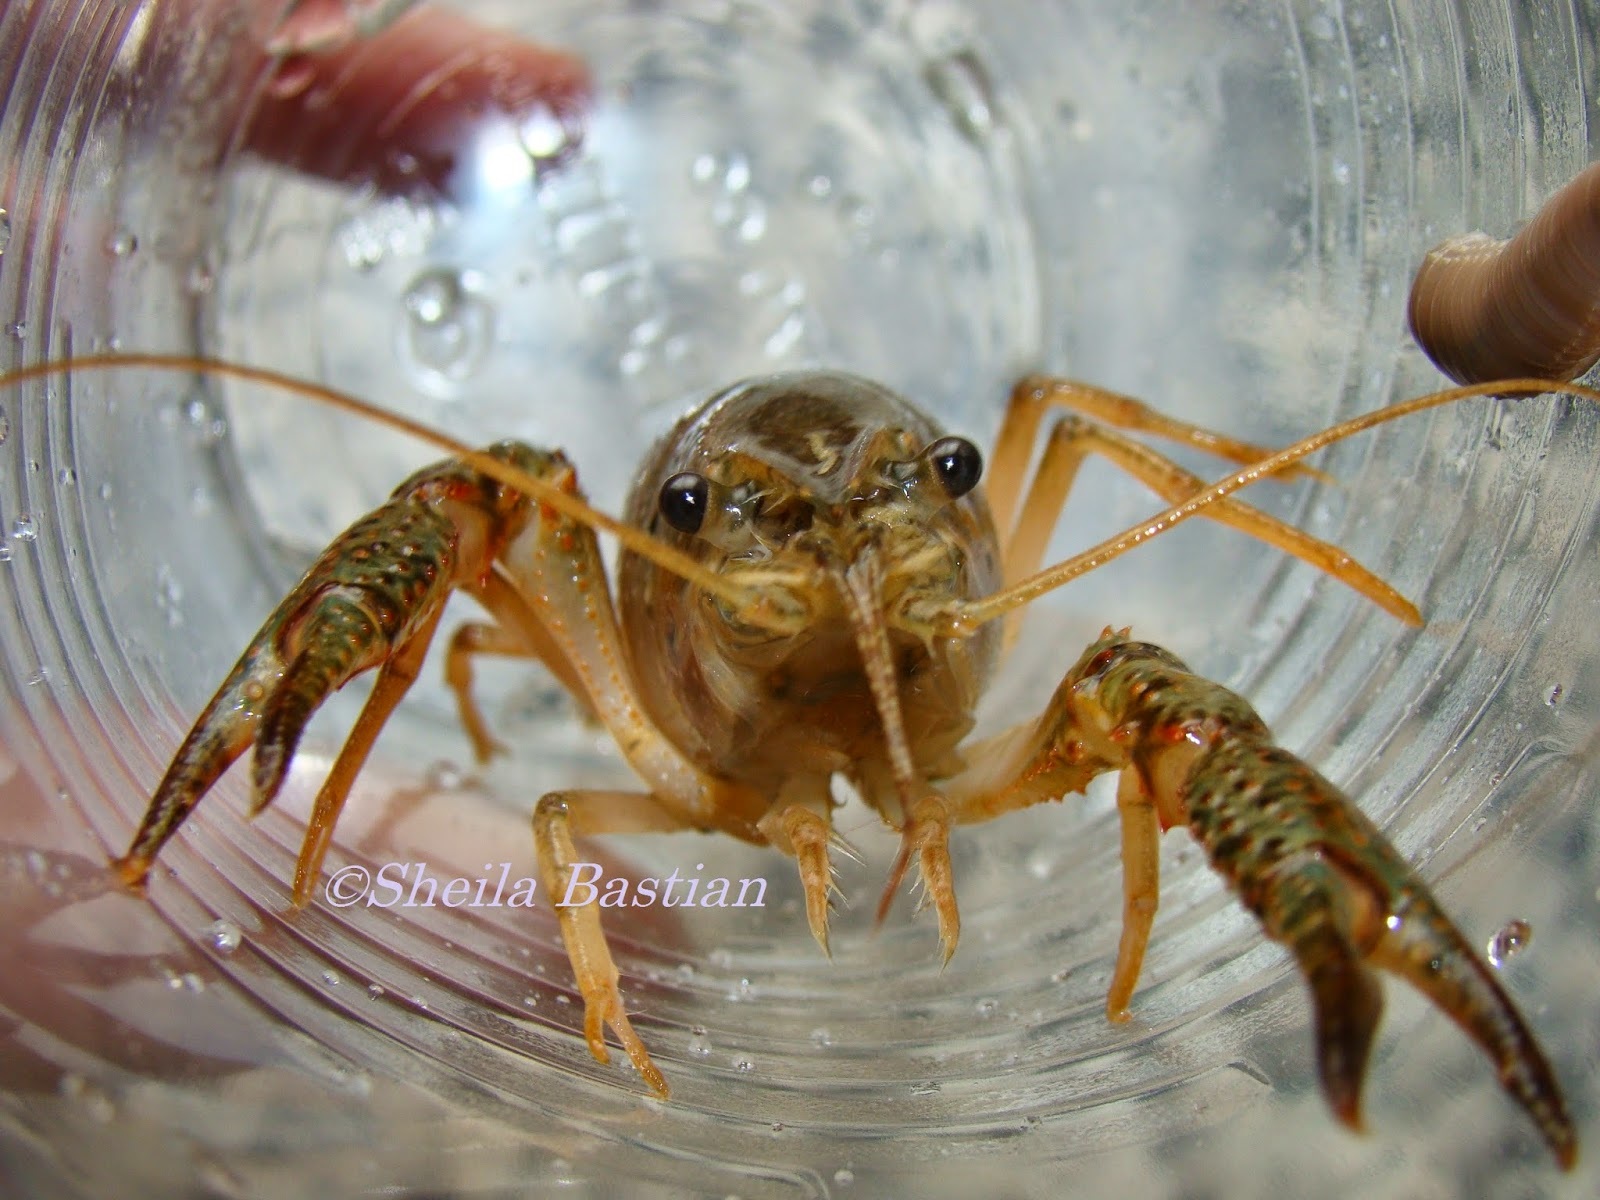 Science Magazine The Freshwater Lobster Or Crayfish